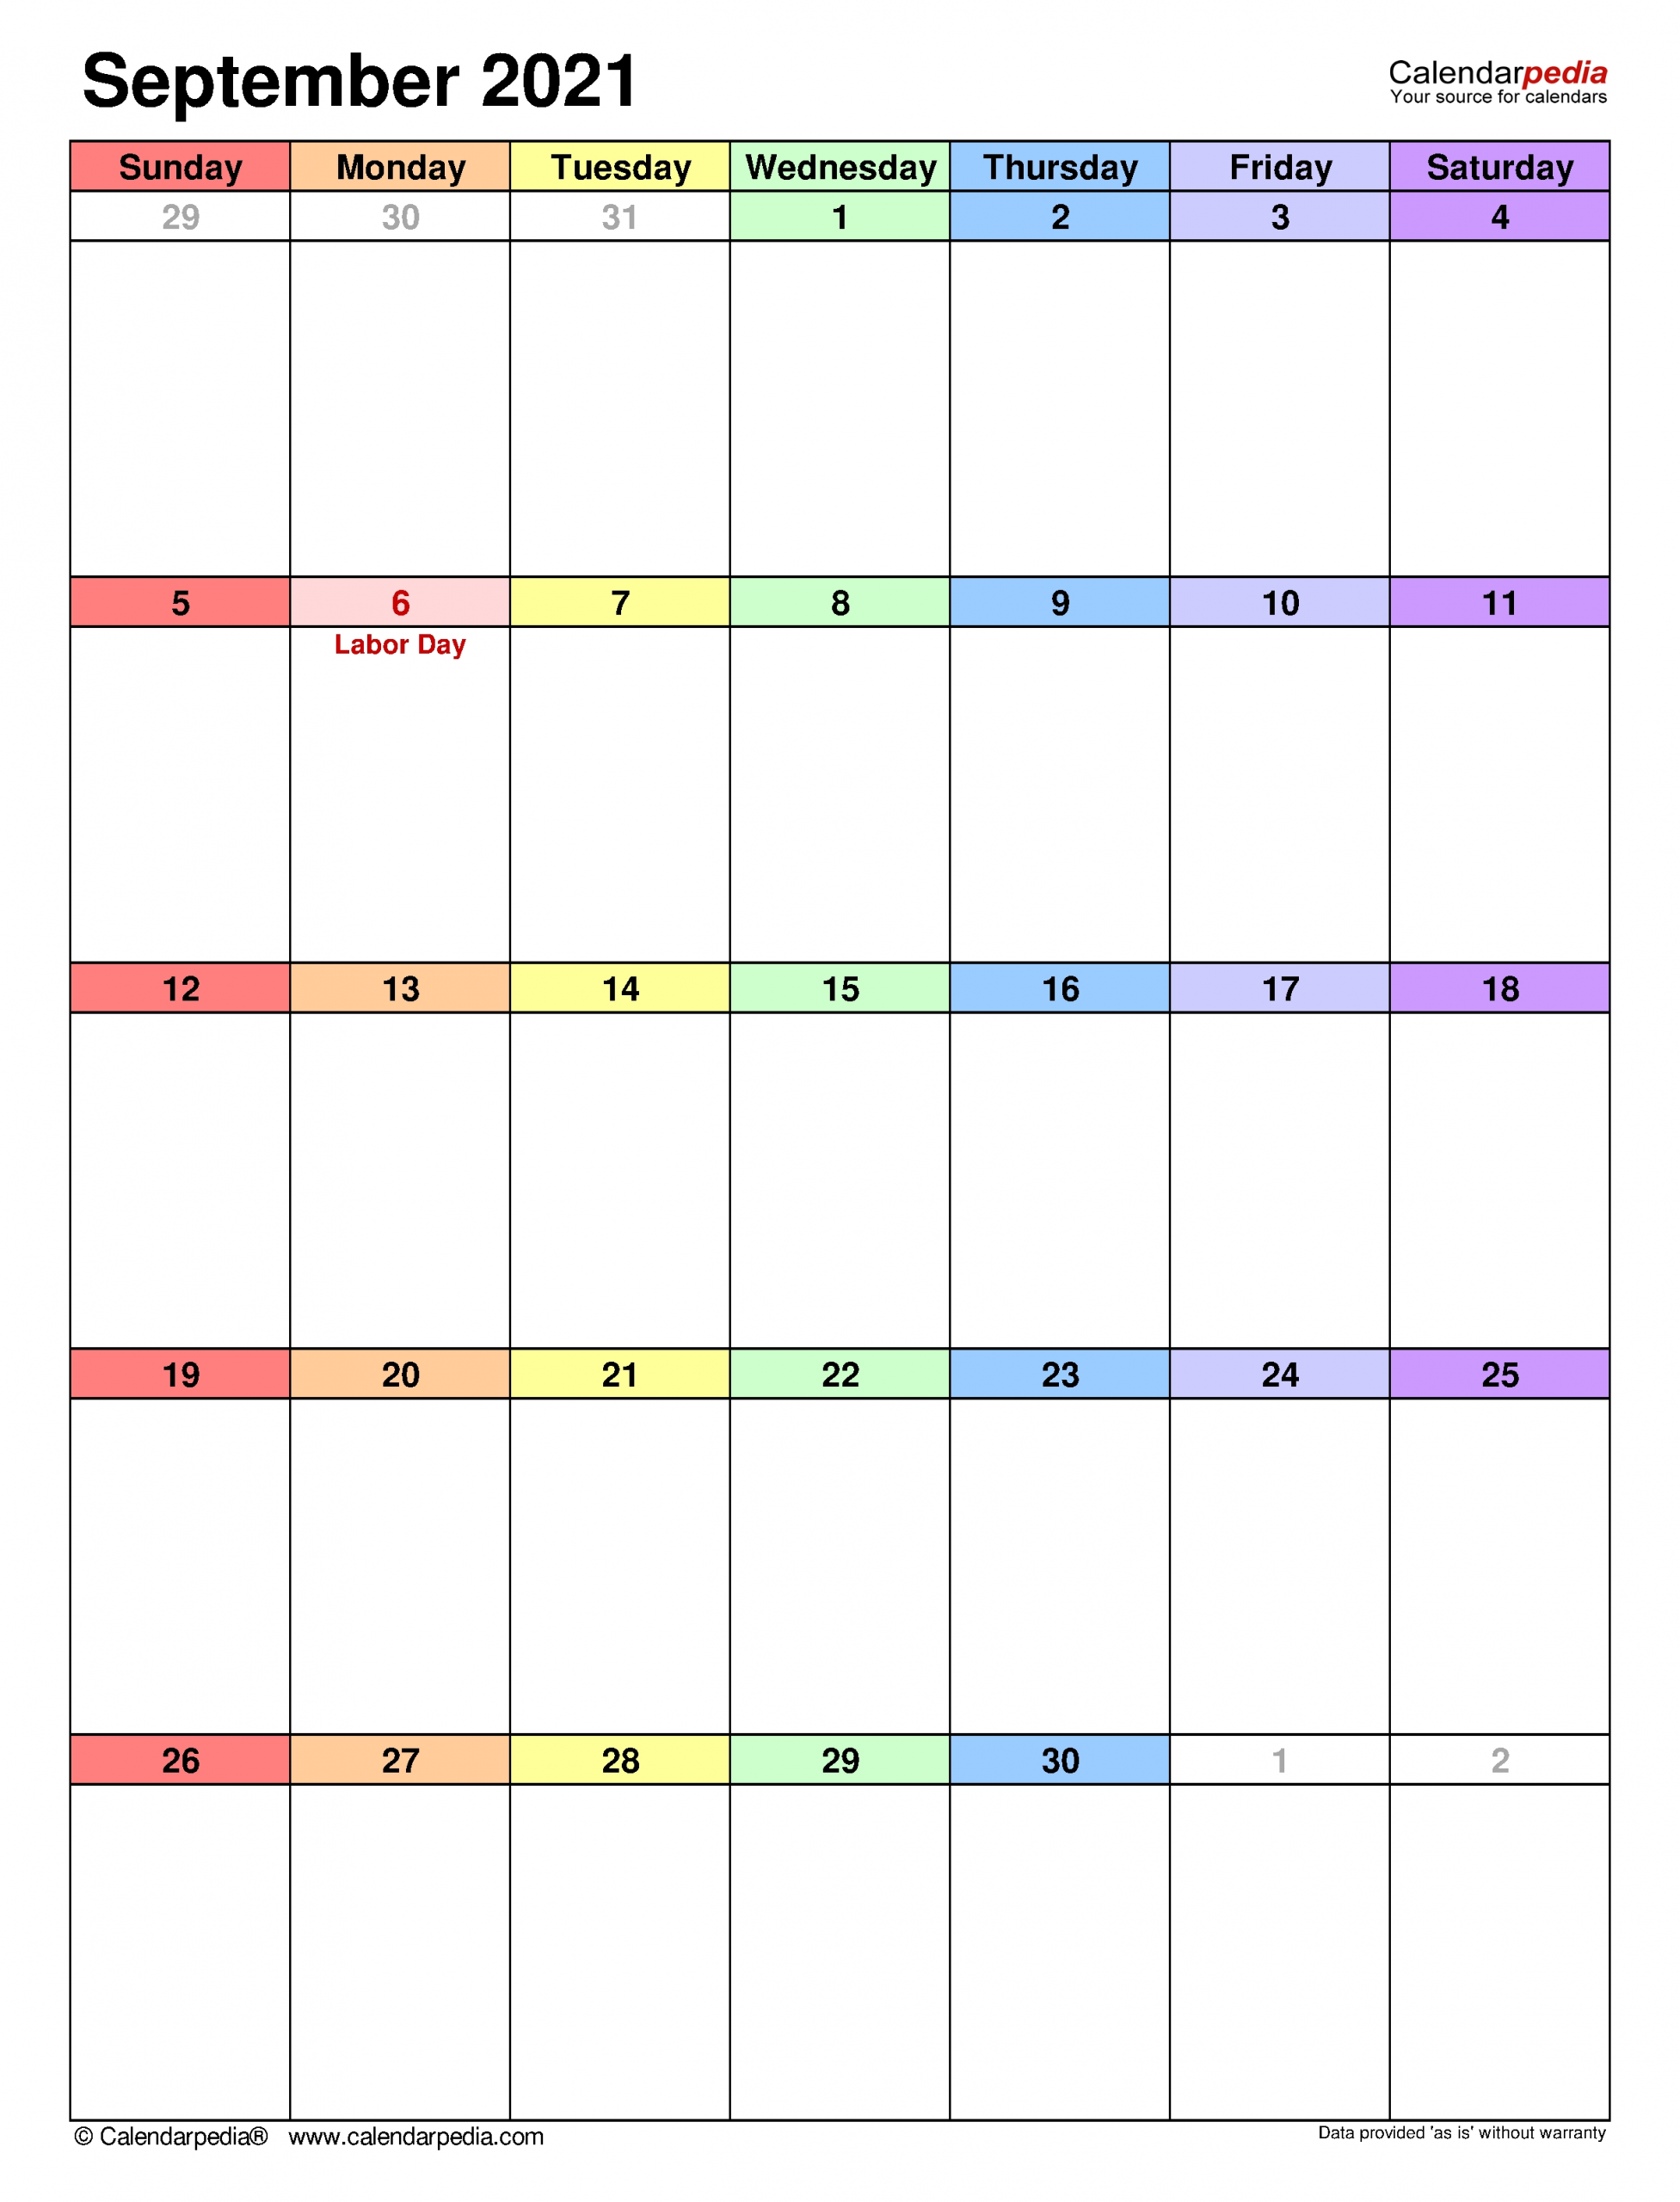 September 2021 Calendar | Templates For Word, Excel And Pdf